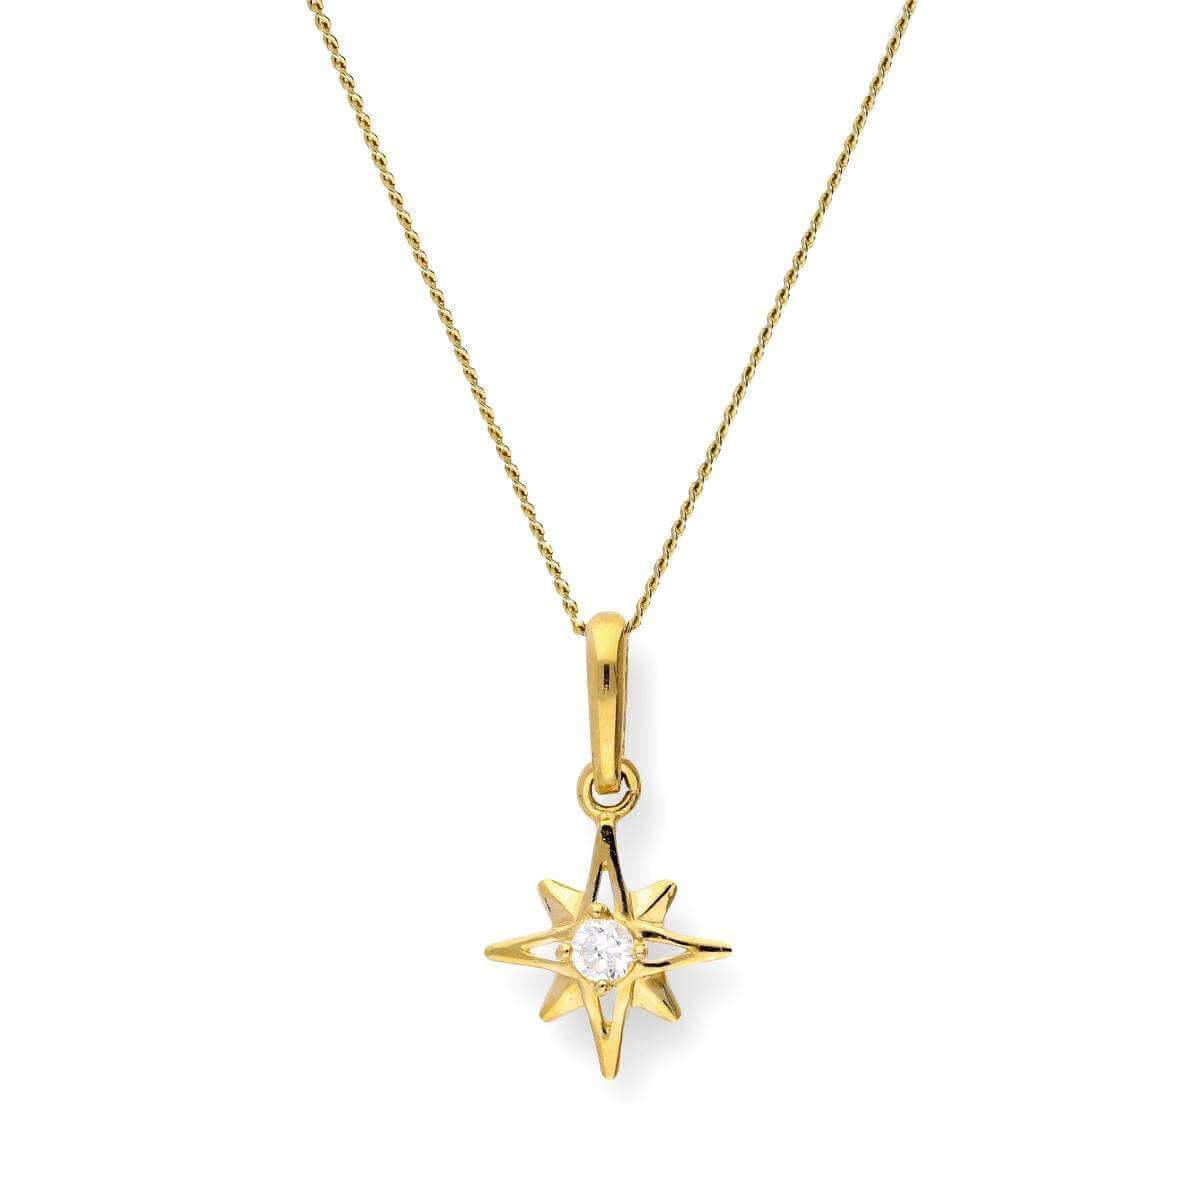 9ct Gold & Clear CZ Crystal Shining Star Pendant Necklace